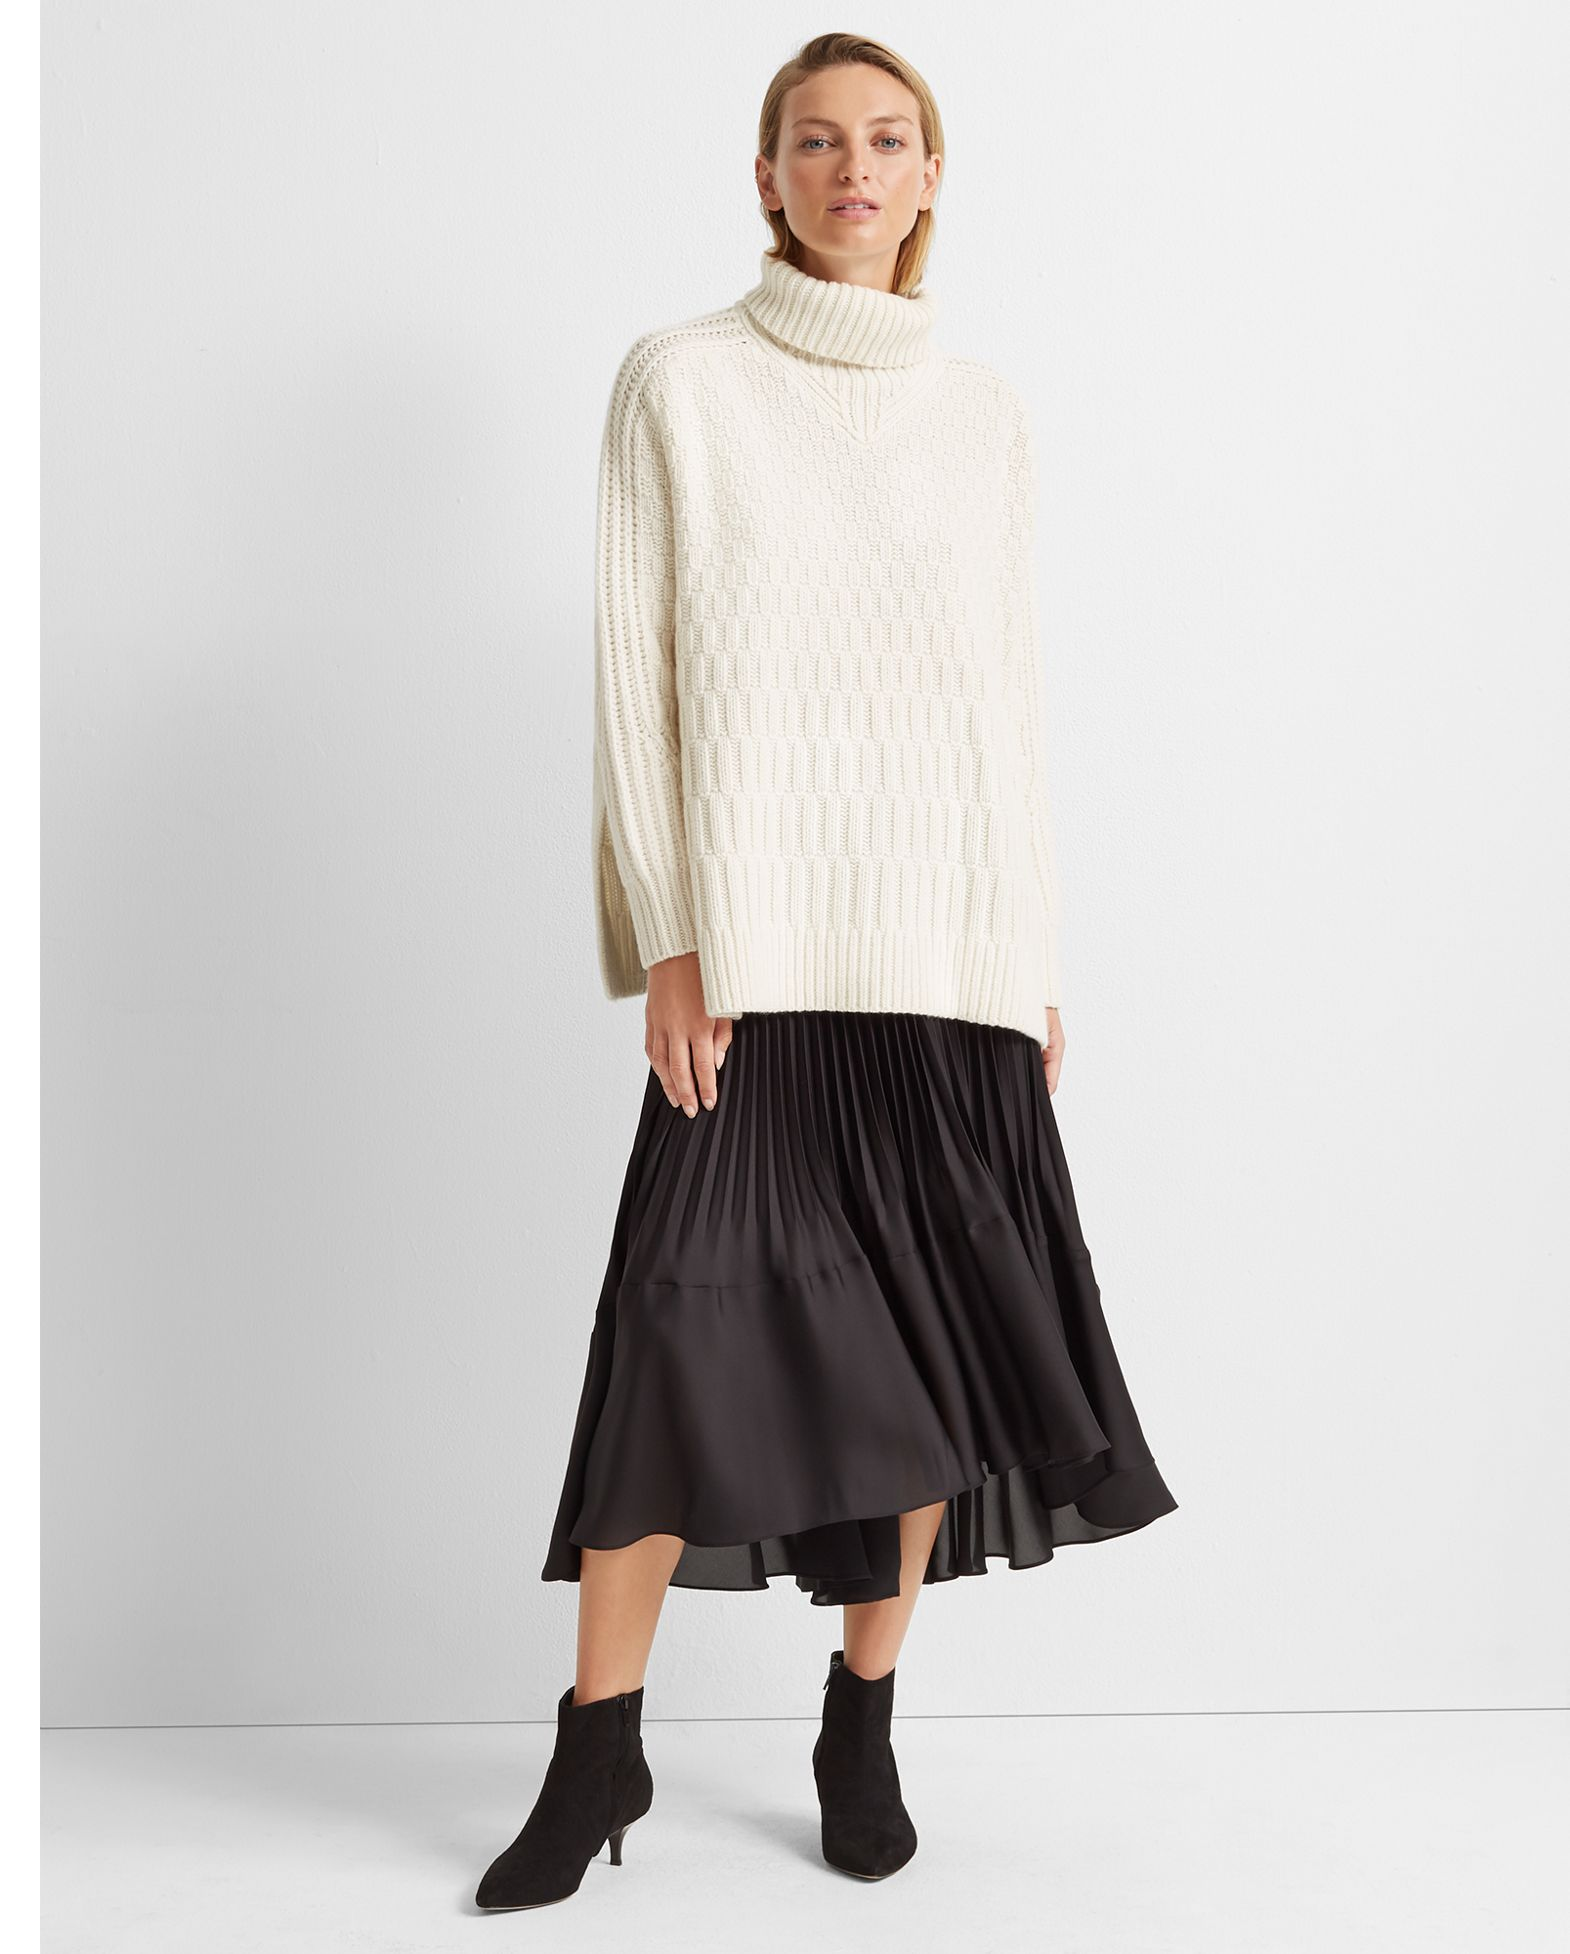 Stitch Cashmere Sweater by Club Monaco